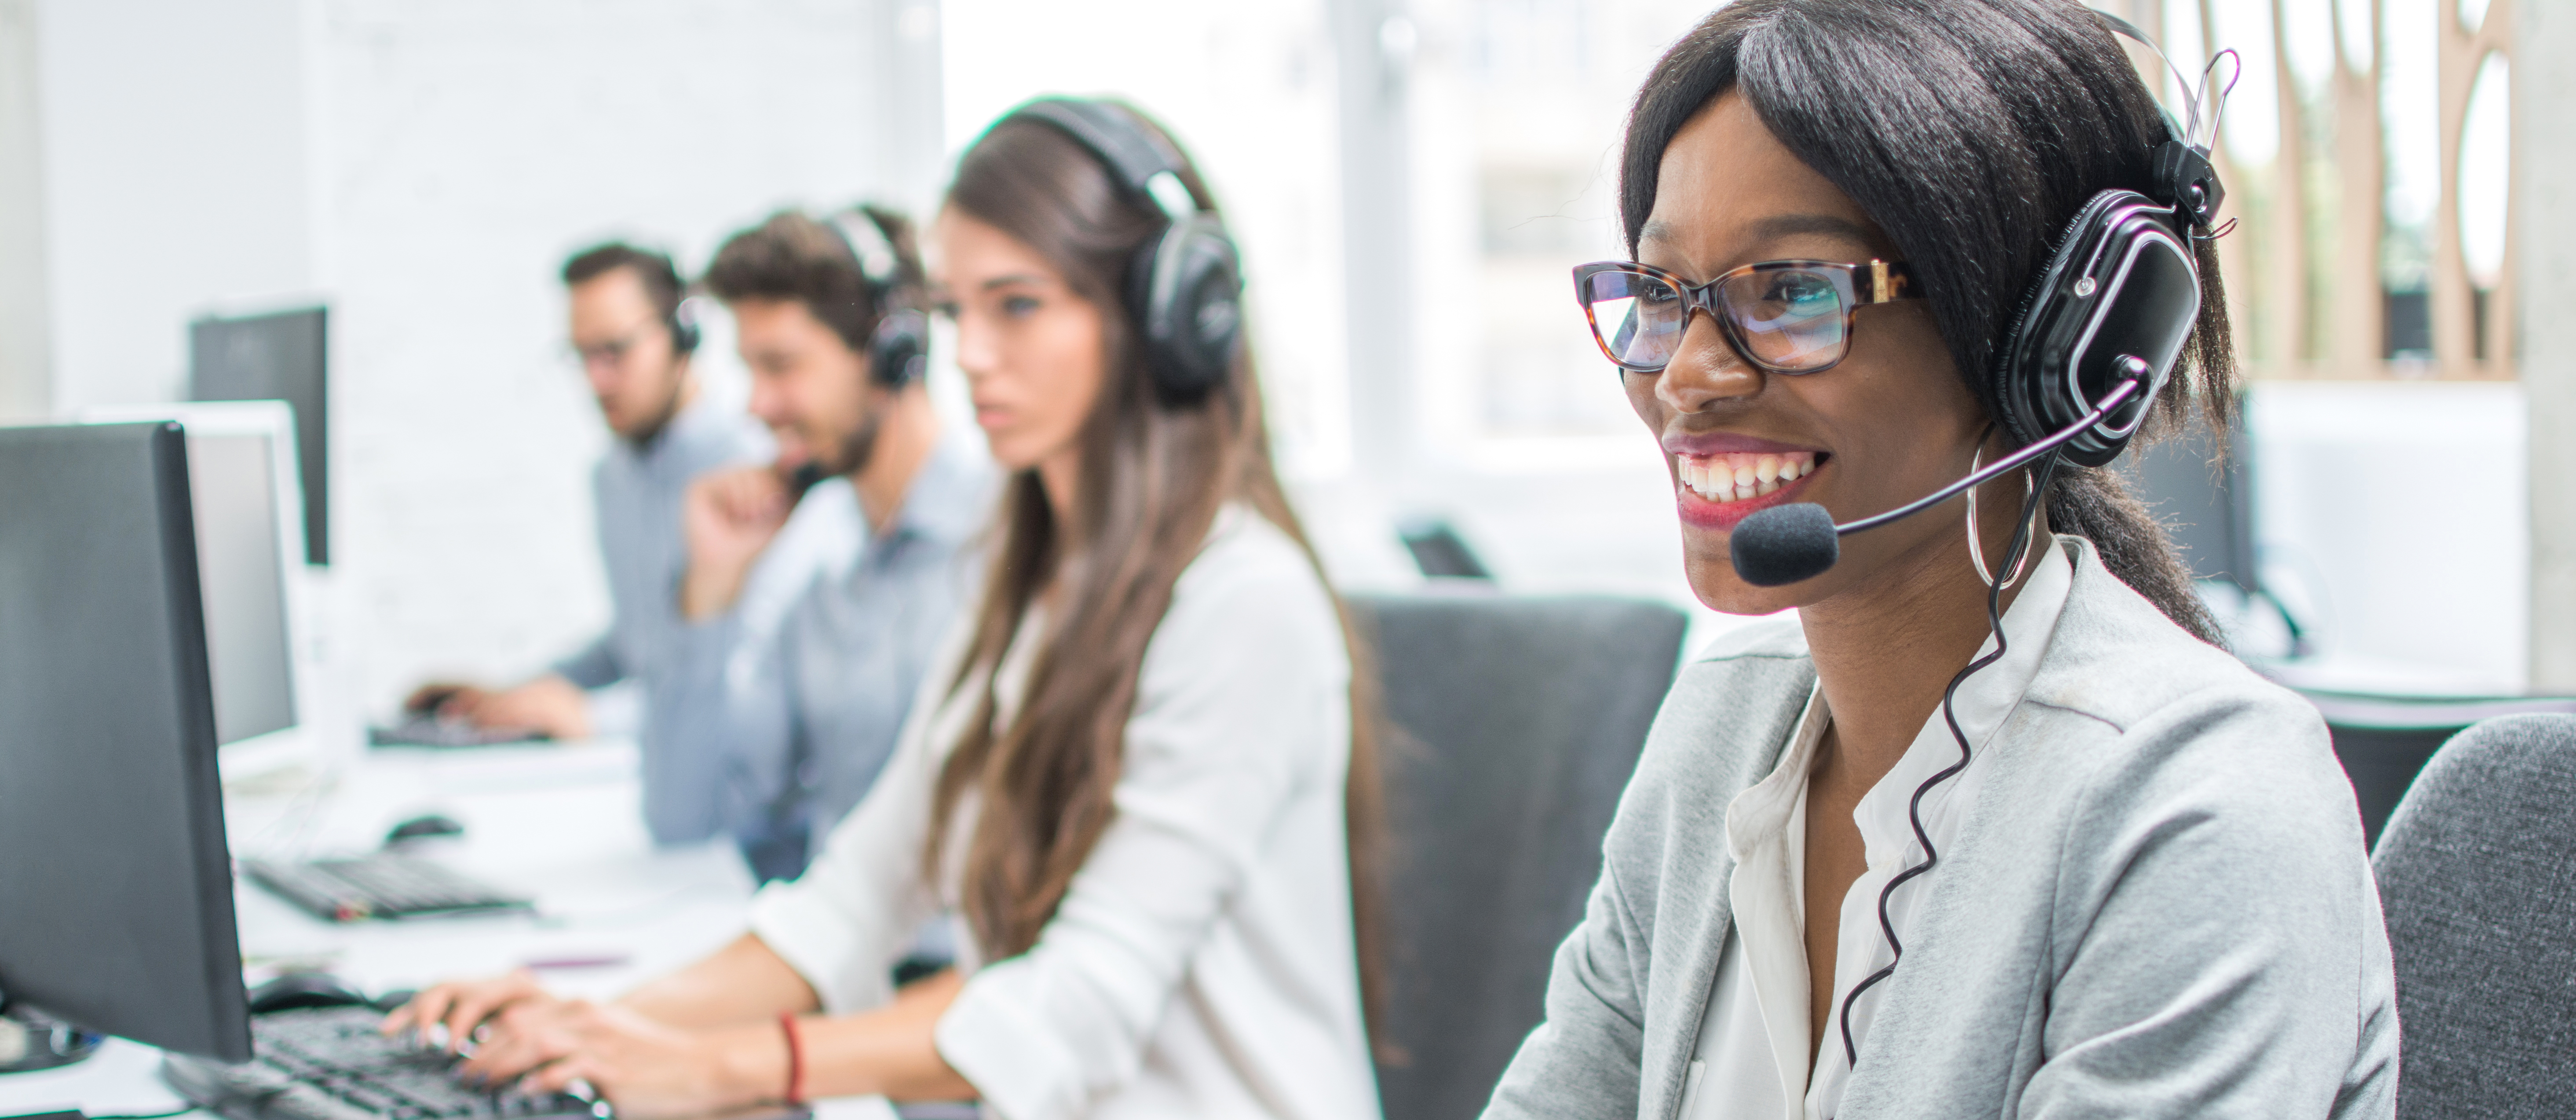 Smiling young woman with headset working in call center.